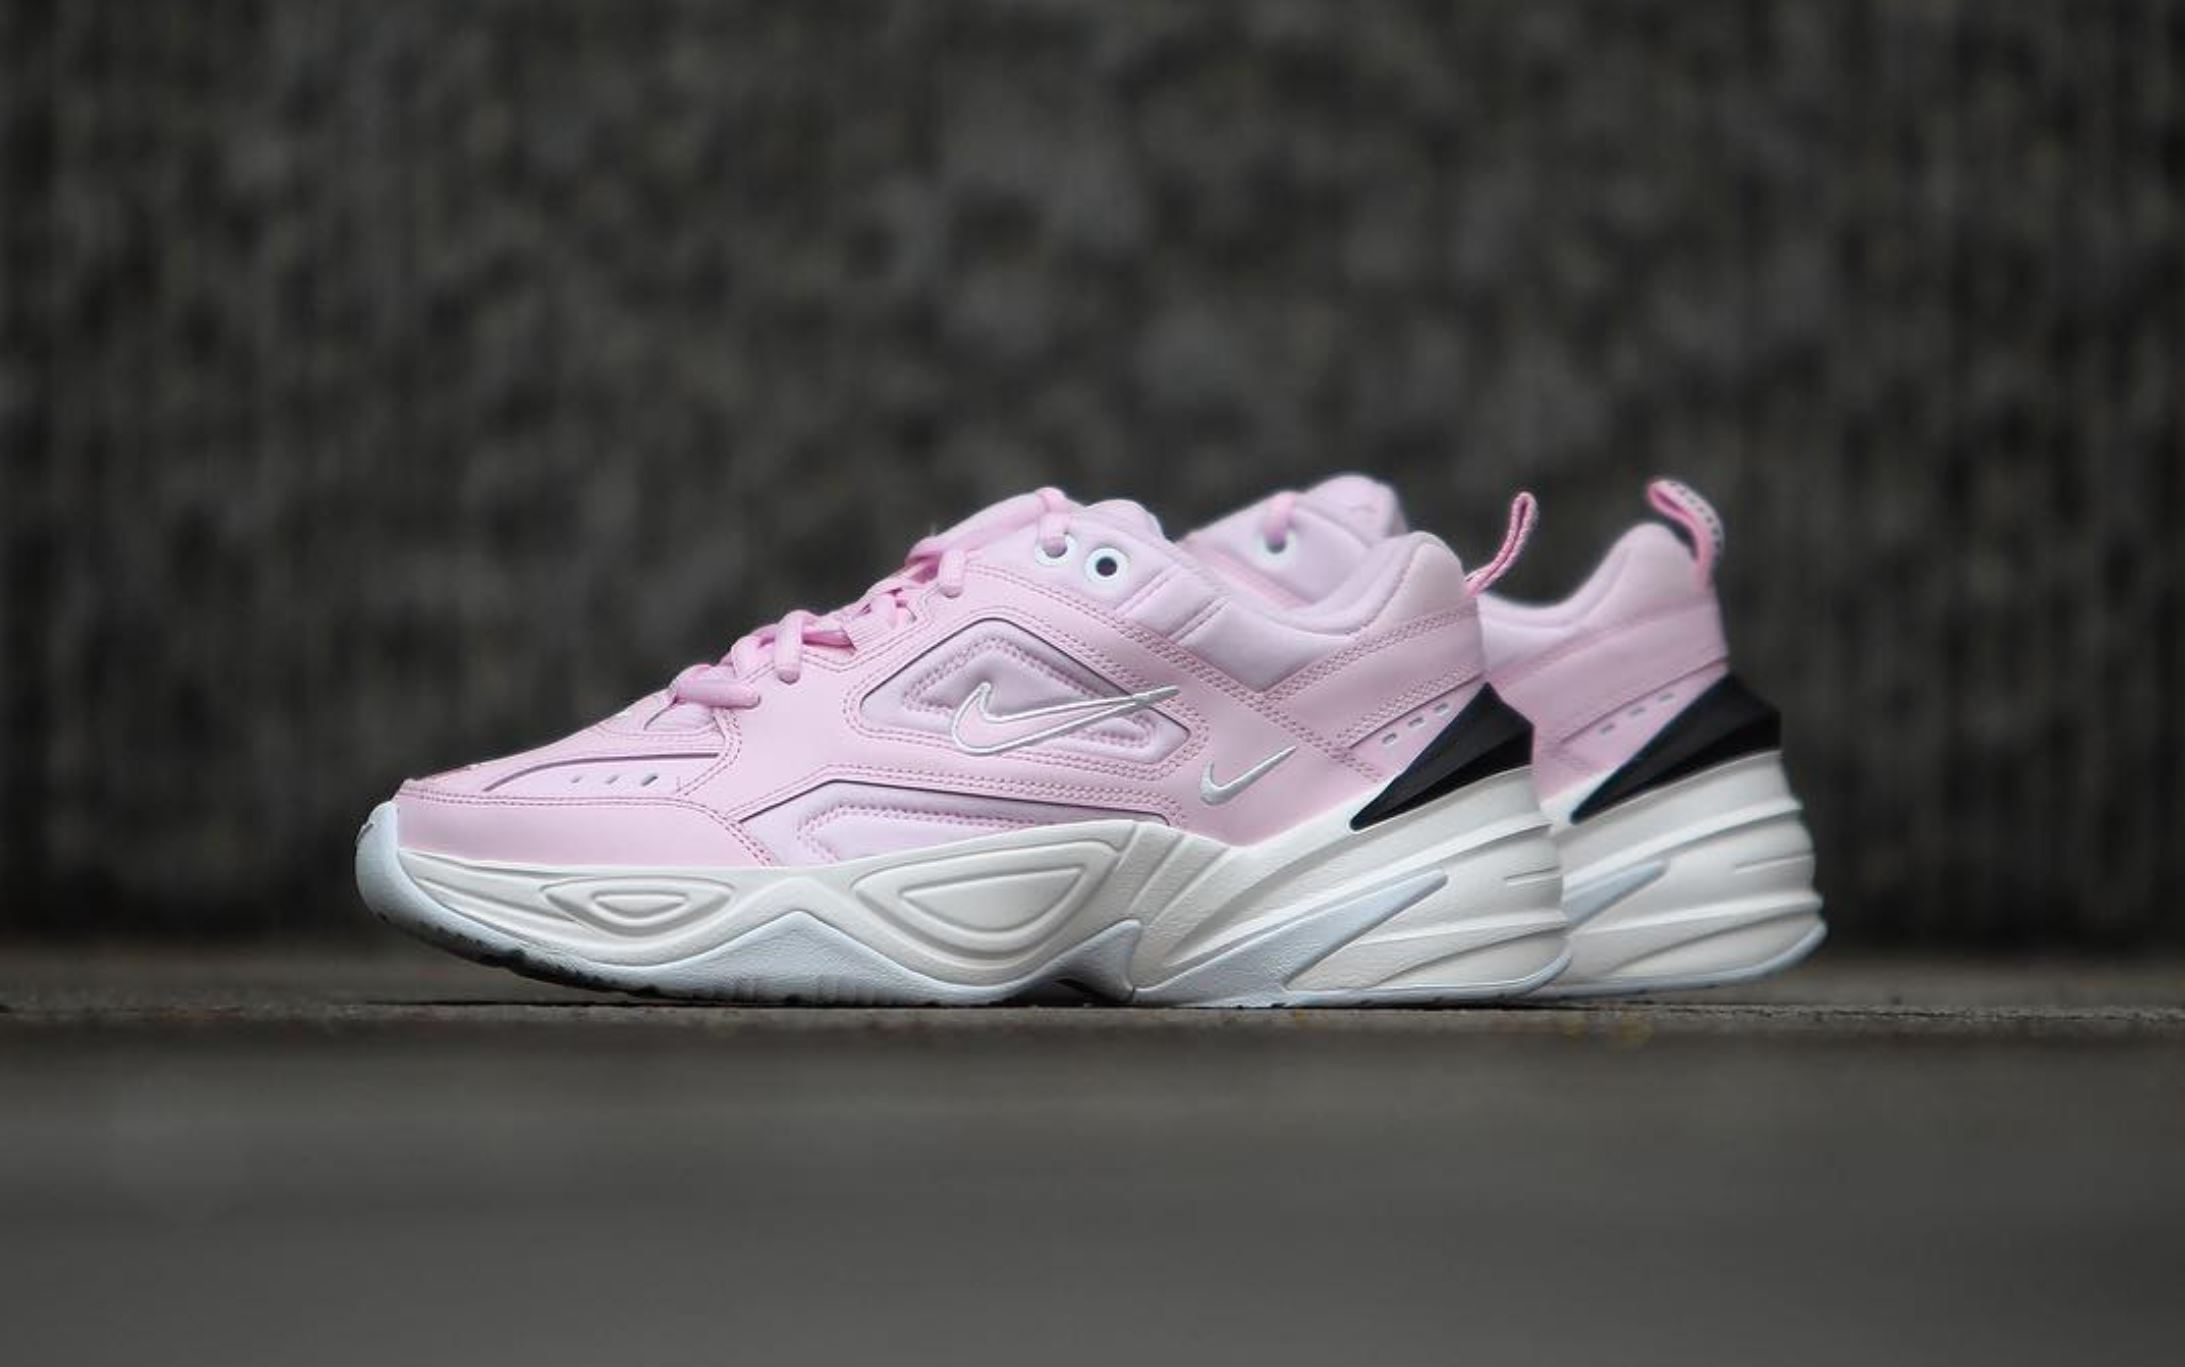 Expect a Pink Nike M2K Tekno to Release